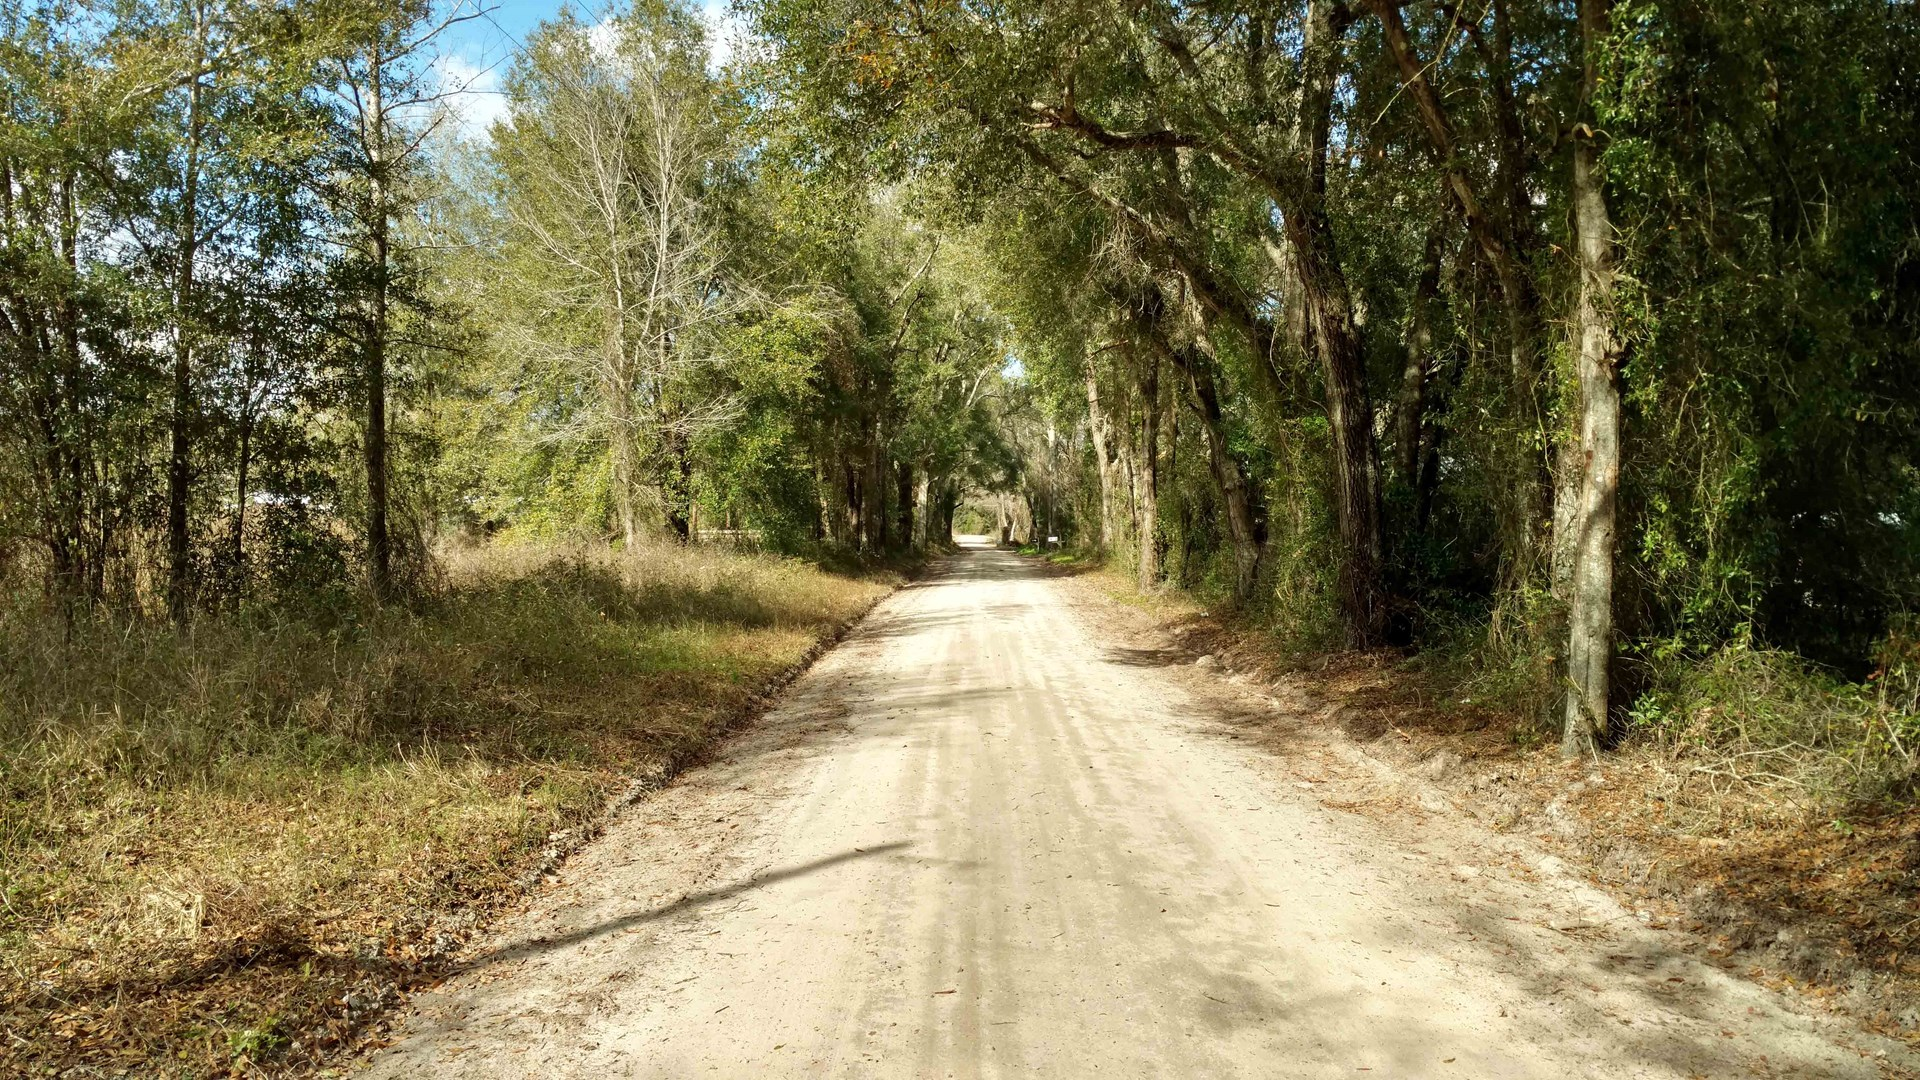 4 ACRES OF LAND FOR SALE IN SUWANNEE COUNTY